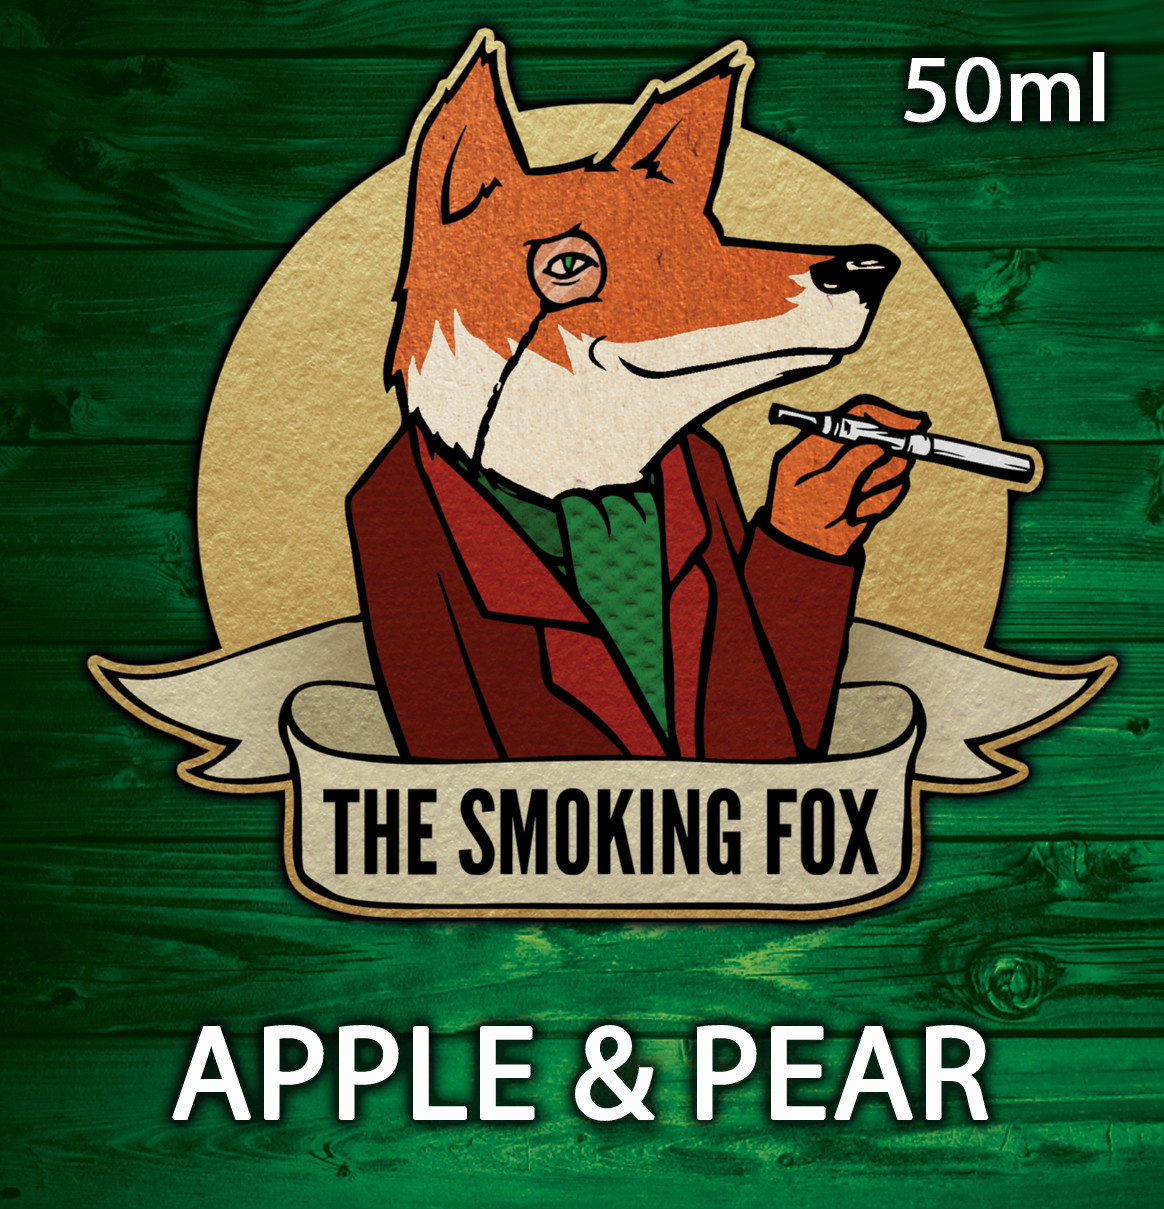 THE SMOKING FOX 50ml SHORTFILL - APPLE & PEAR